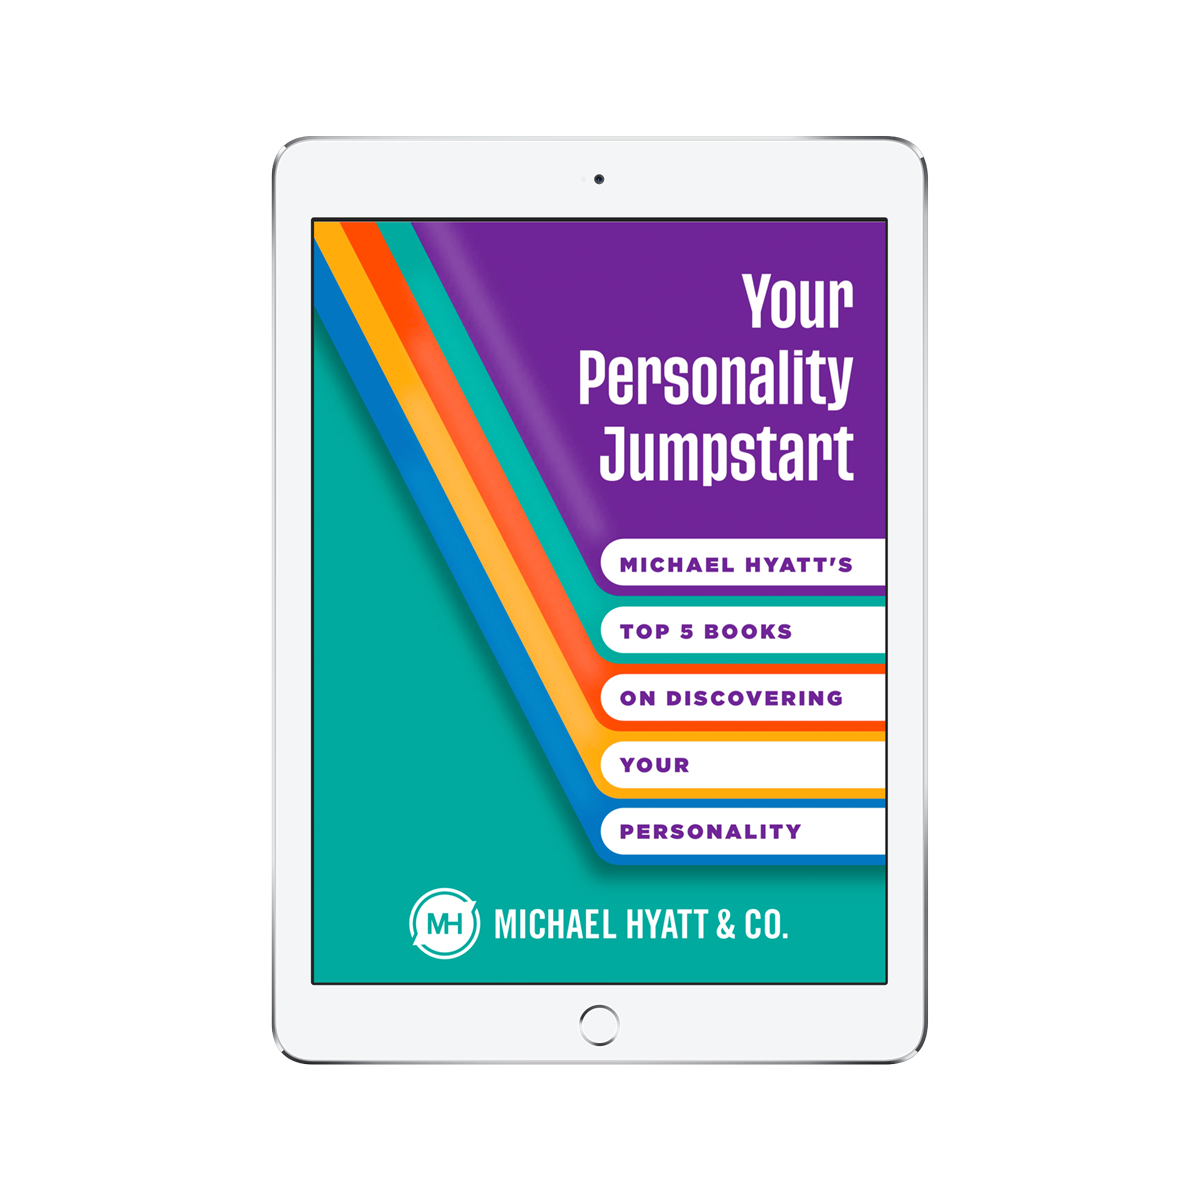 Your Personality Jumpstart